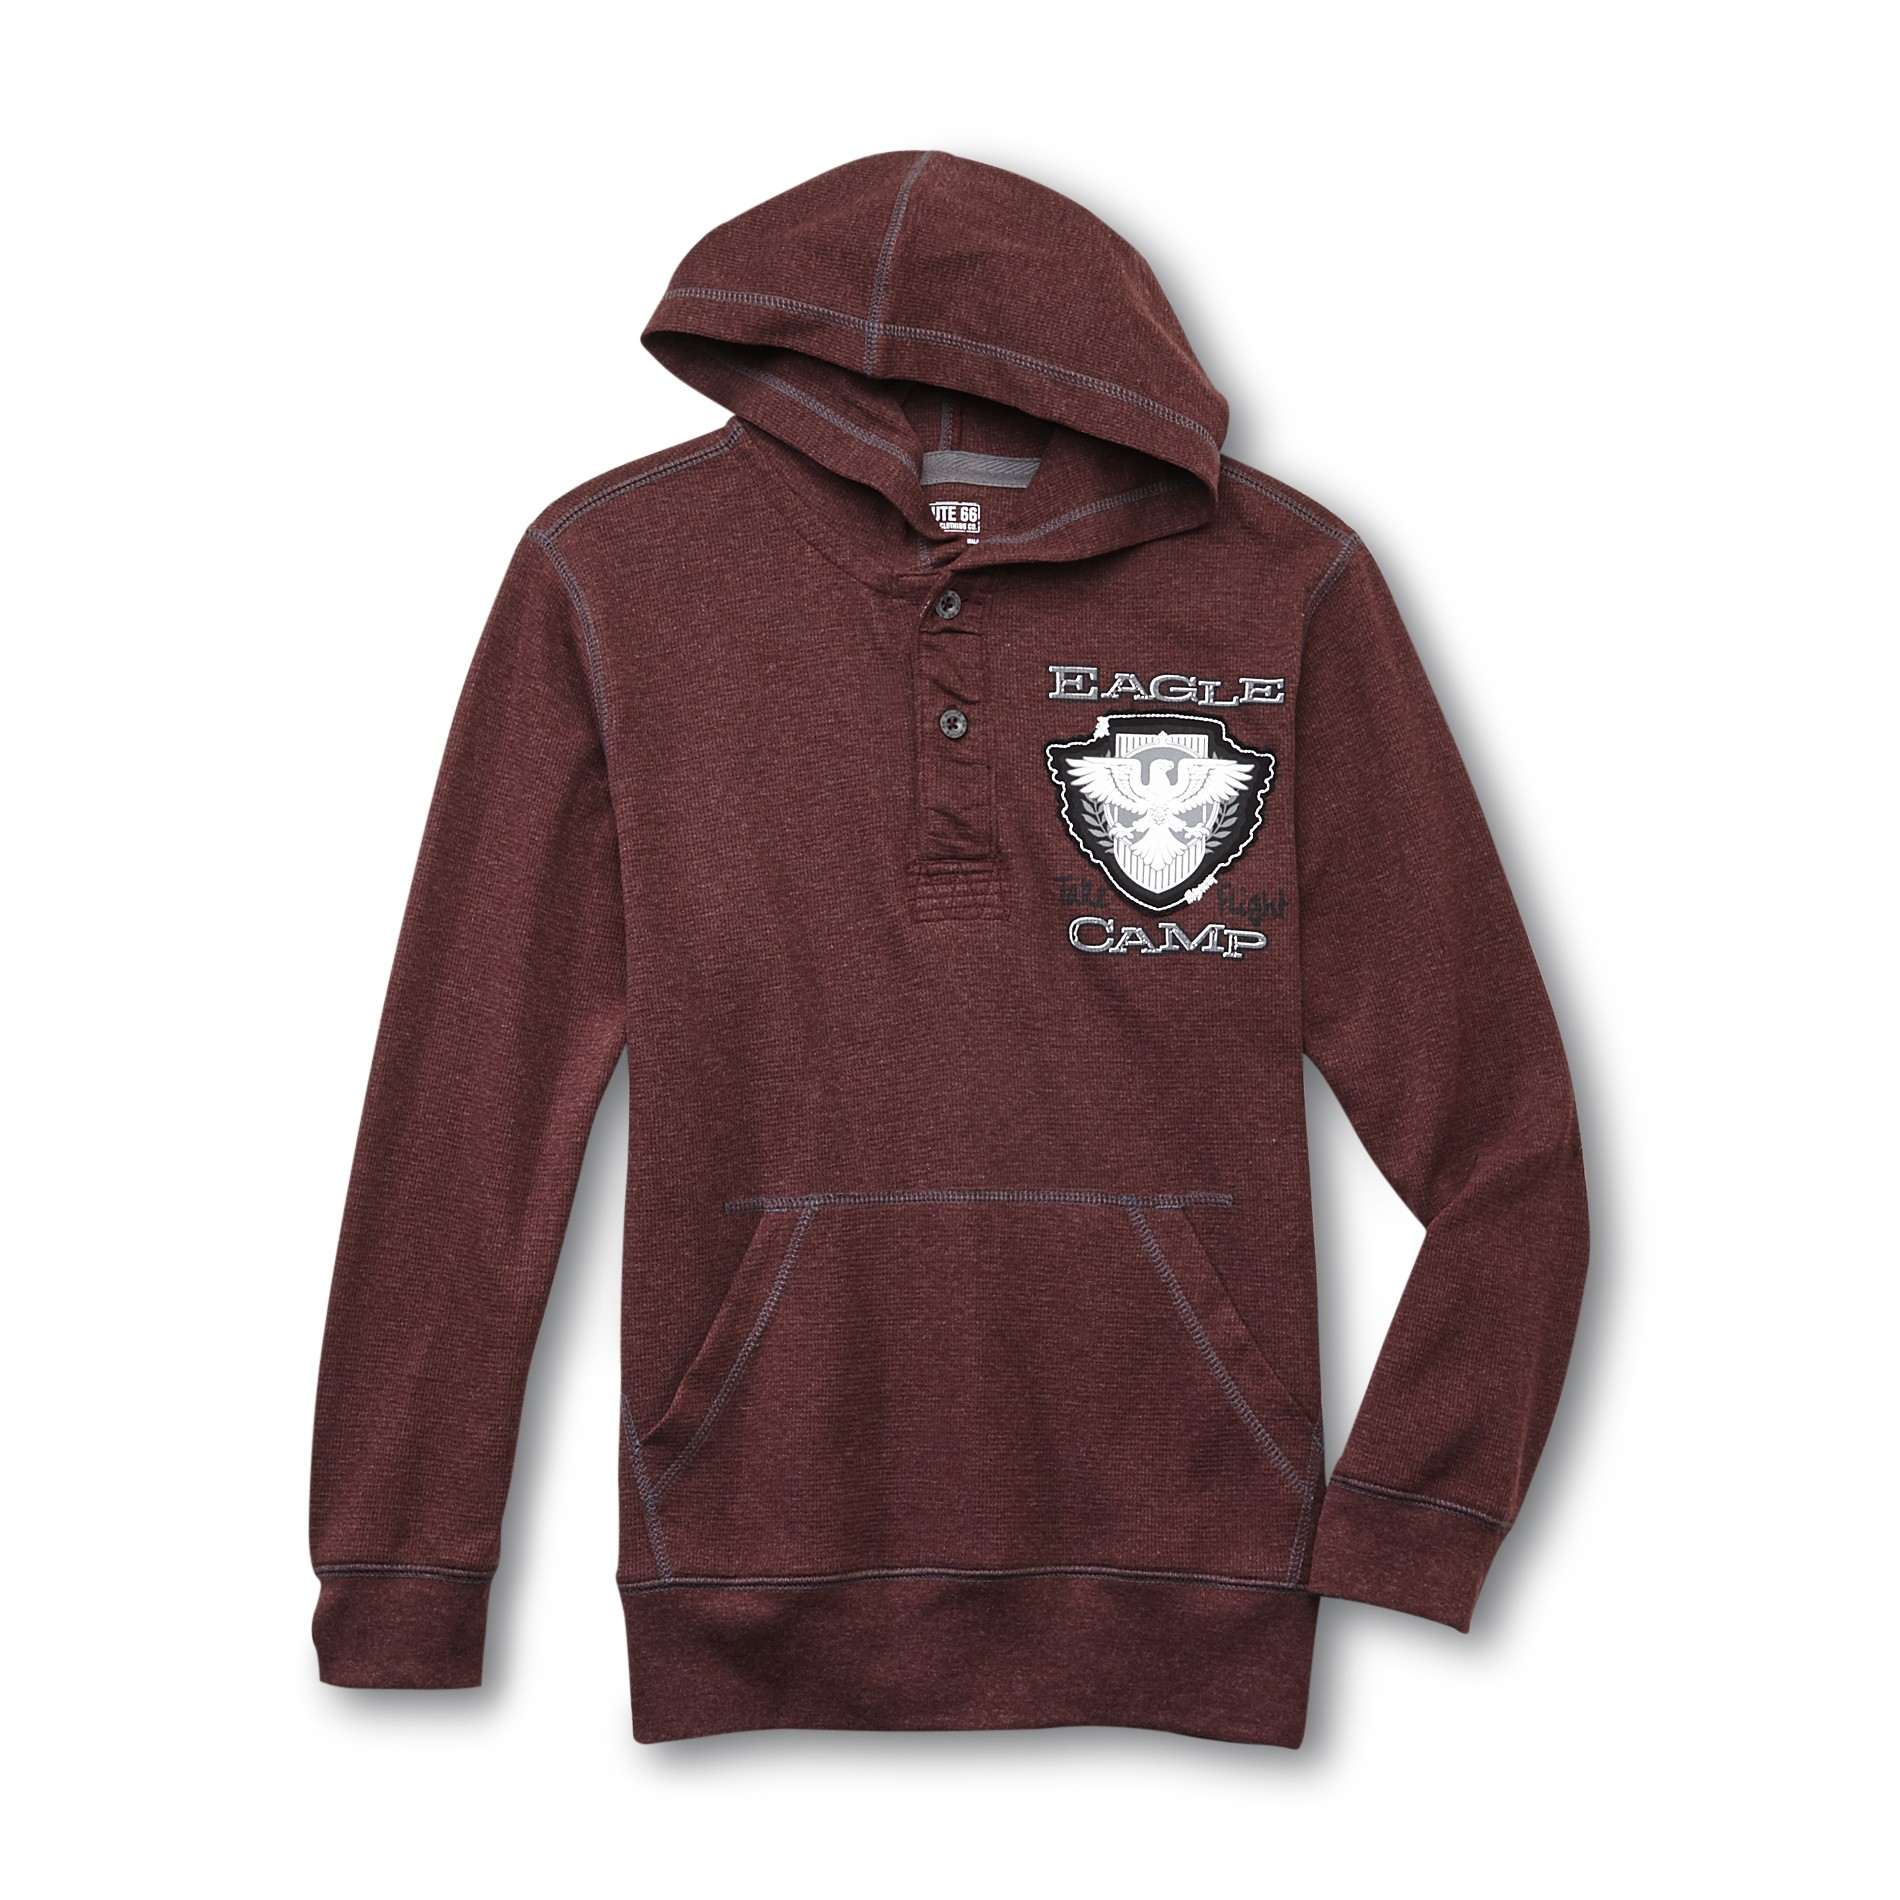 Boy's Thermal Hoodie - Eagle Camp